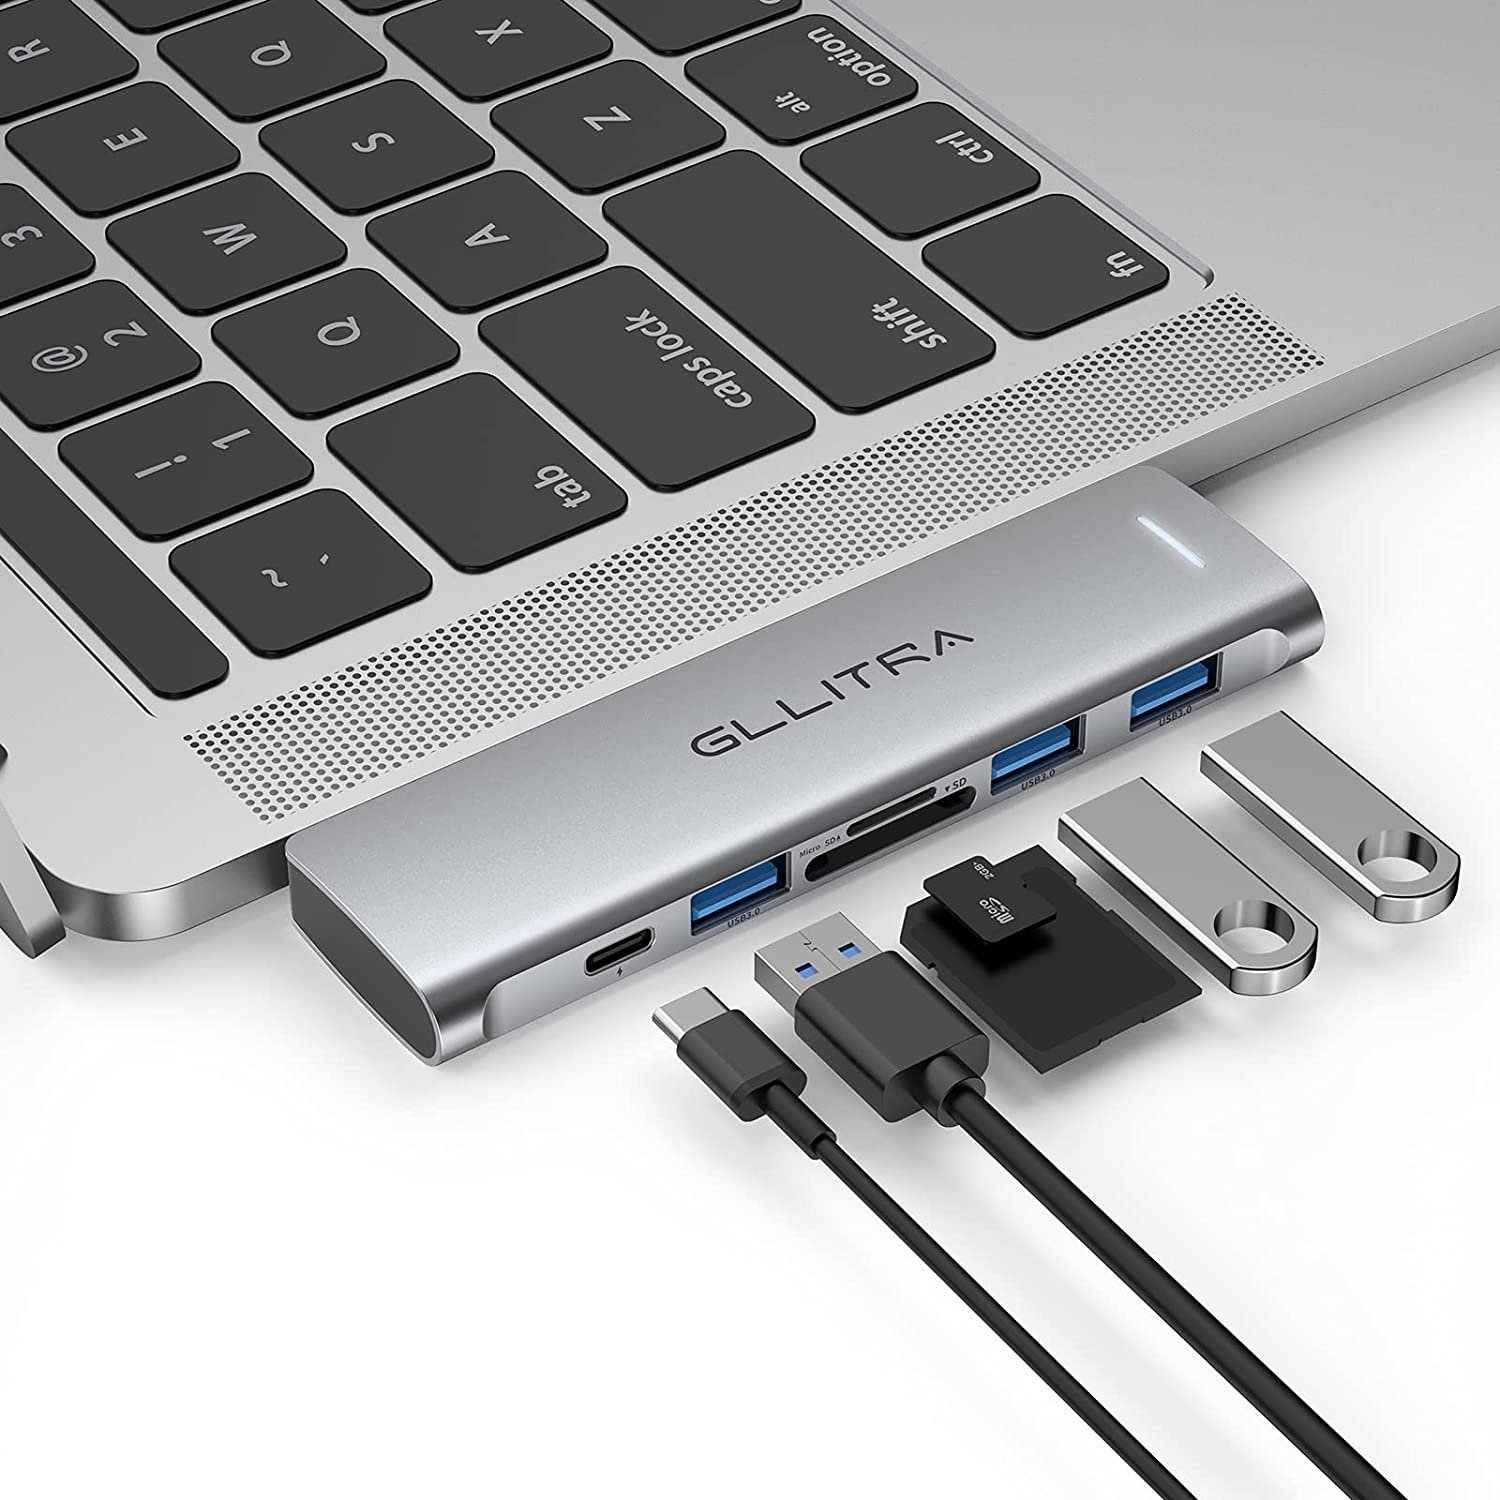 USB C Hub, GLLITRA 6 in 2 USB C Adapter for MacBook Pro with 3 USB 3.0 Ports, SD/TF Card Reader, 100W Thunderbolt 3 PD Port, Support for MacBook Pro 13